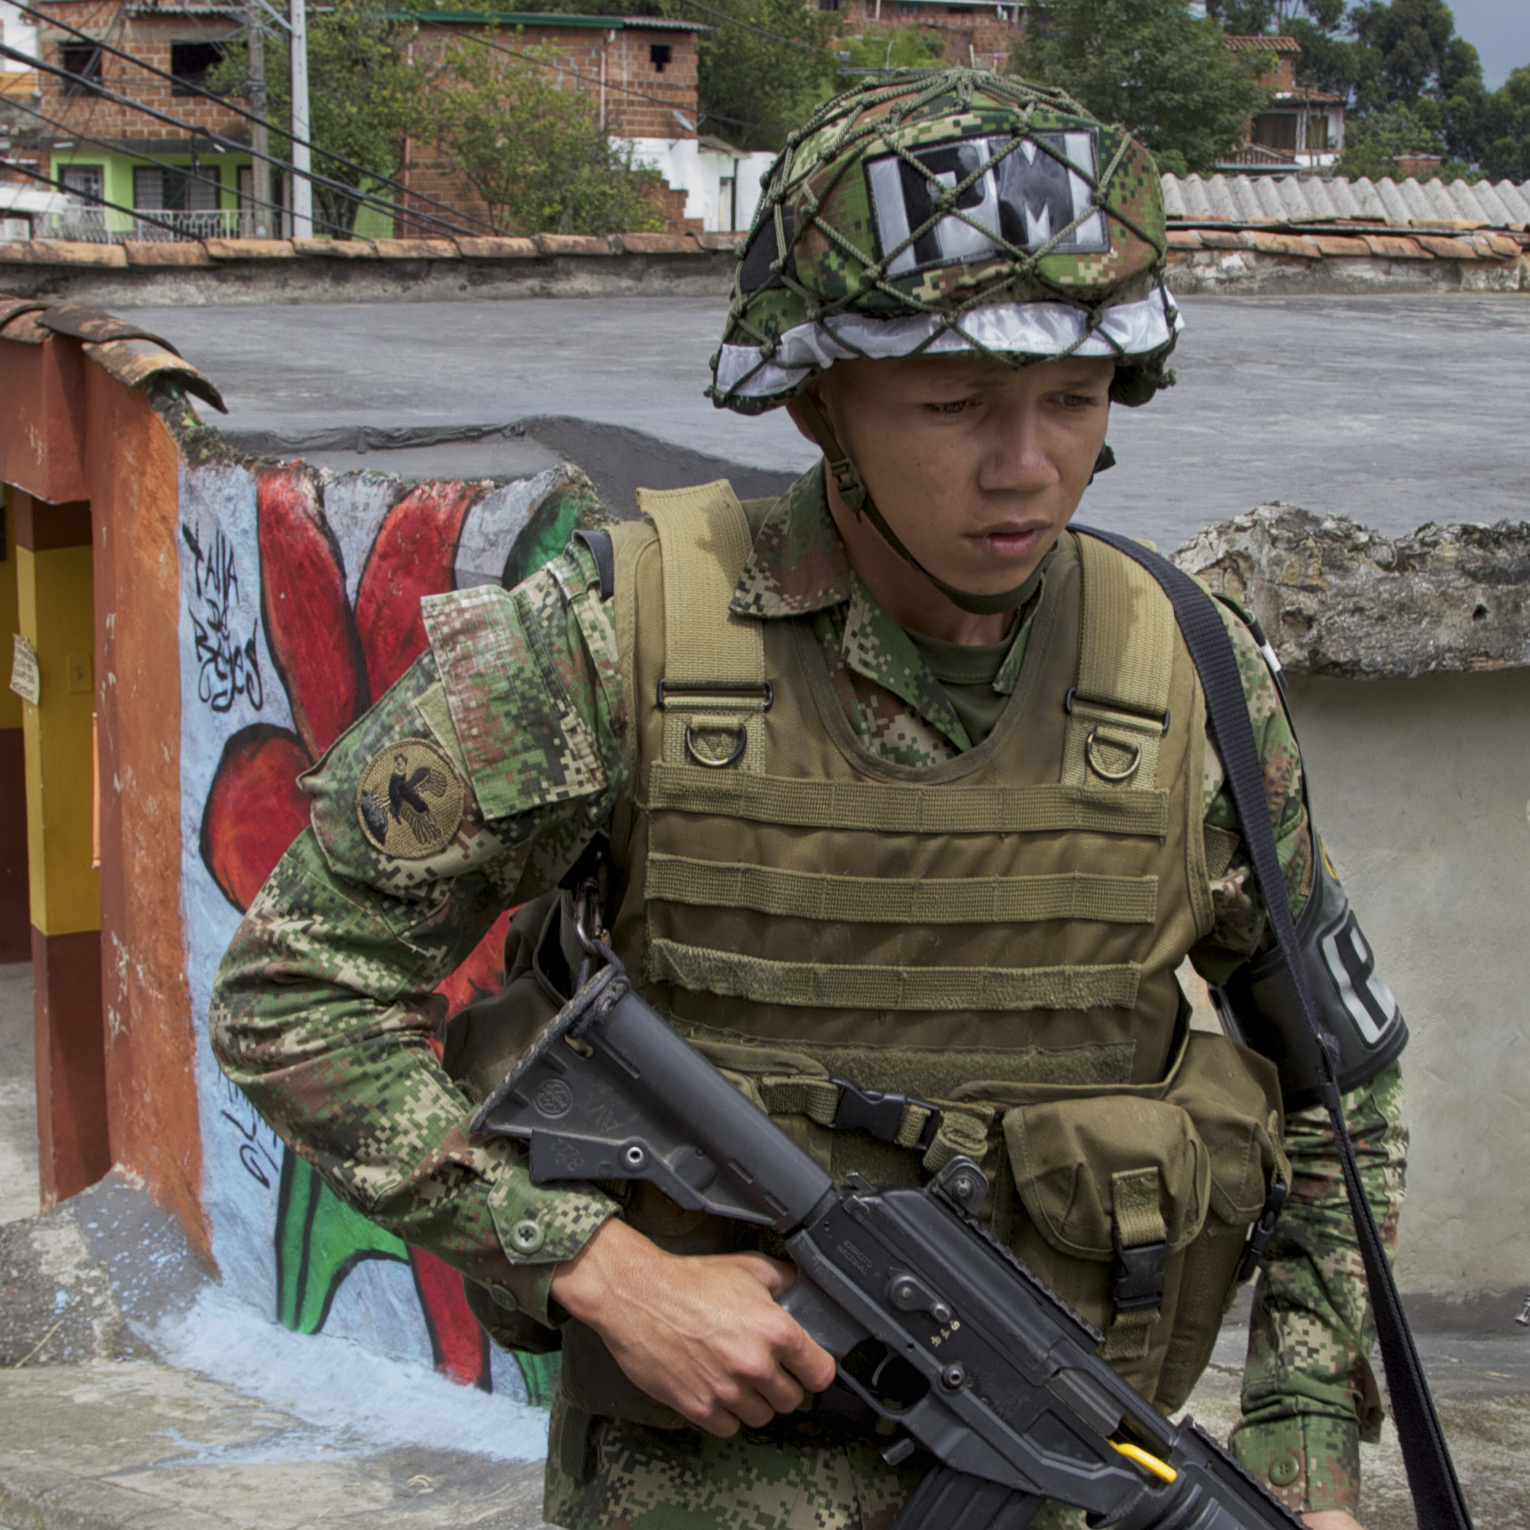 Colombian army soldiers patrol the Loma de Cristo�bal neighborhood after warring gangs forced dozens of families to flee. Medellin used to be the most dangerous city in the world but officials embarked on innovative projects designed to make life better in tough neighborhoods.